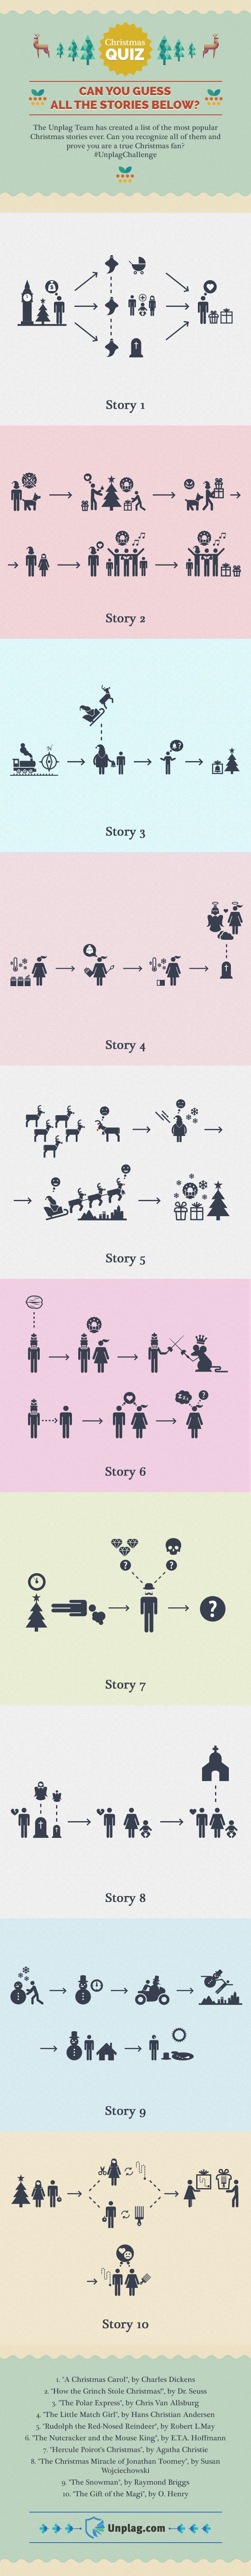 Christmas Story Quiz by Unplag #infographic #Christmas #Books